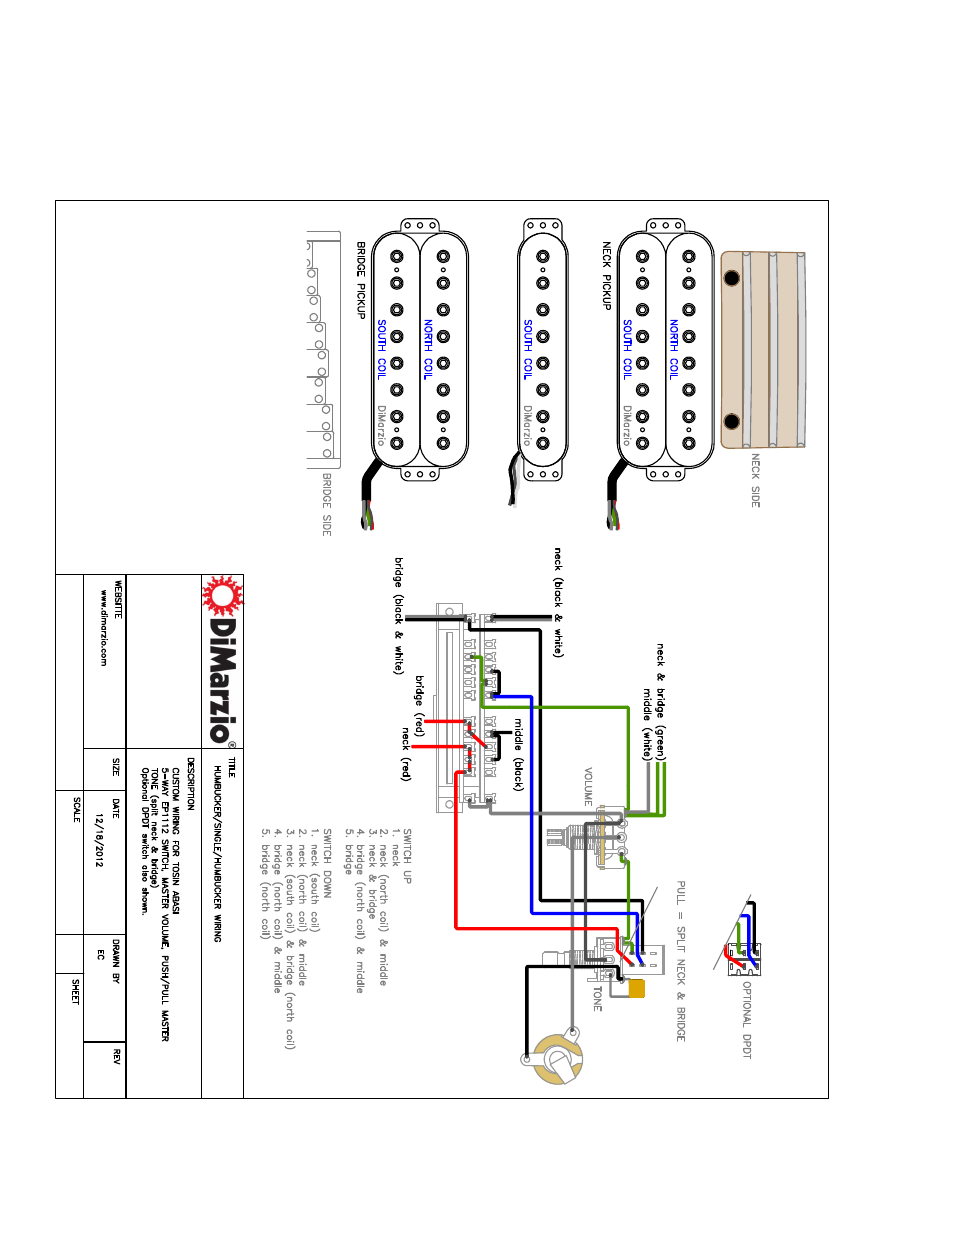 Rotary Switch Wiring Diagram Dimarzio Great Design Of For Guitar 5 Way 36 16 Position